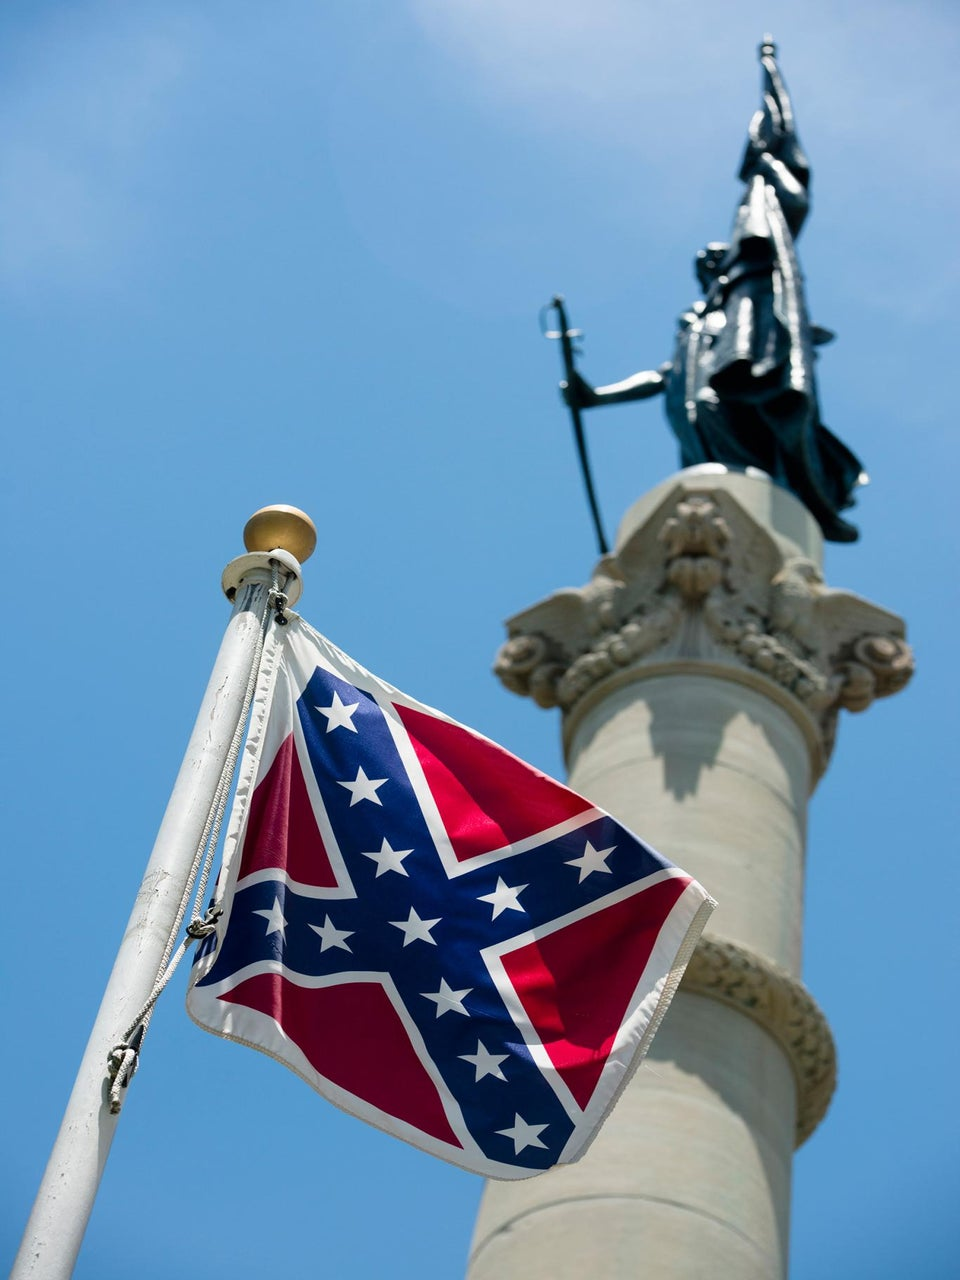 South Carolina Woman Arrested After Removing Confederate Flag from State Capitol